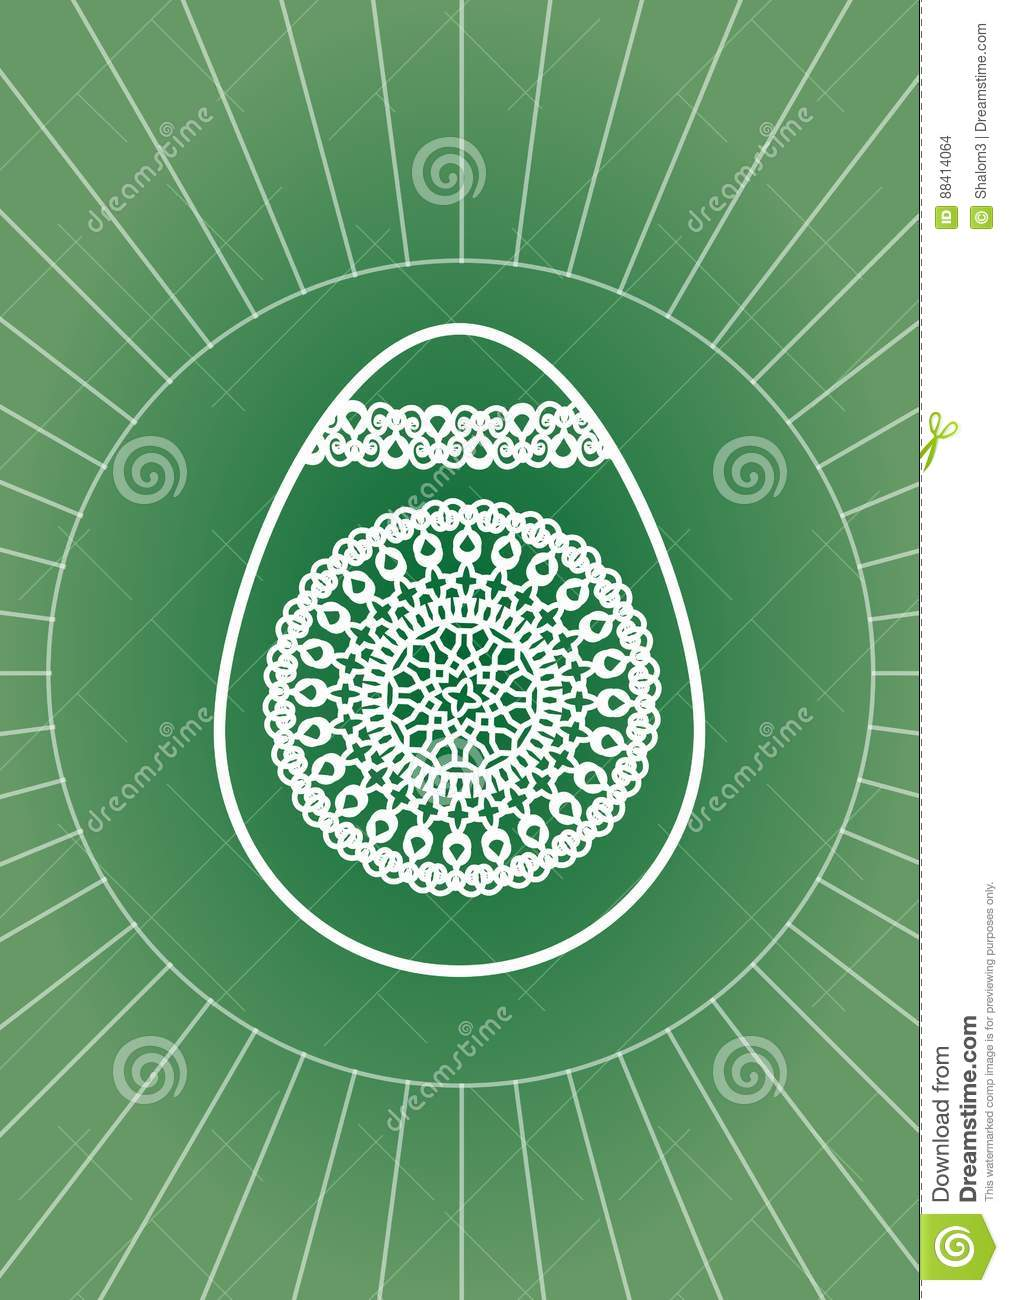 Background image 8841 - Easter Egg Decoration With White Line Drawing On Green Background Stock Vector